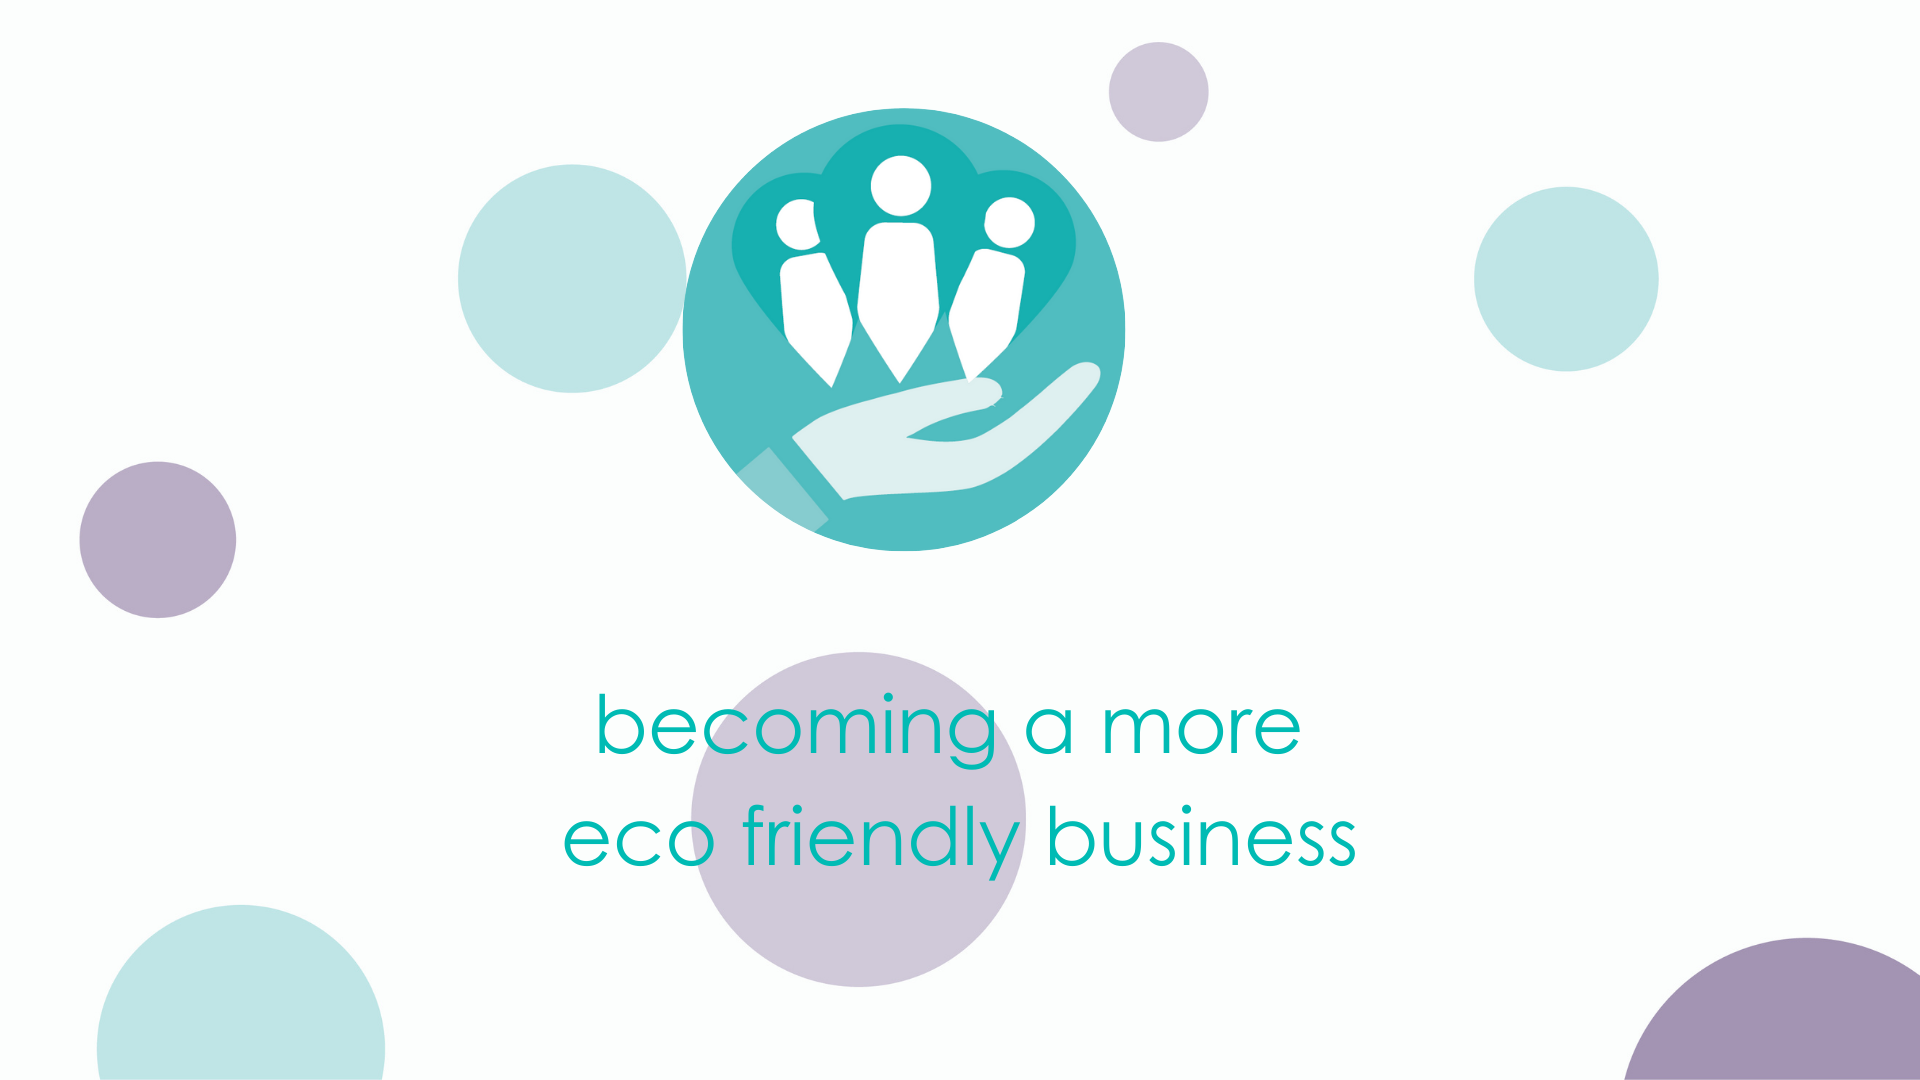 becoming a more eco friendly business